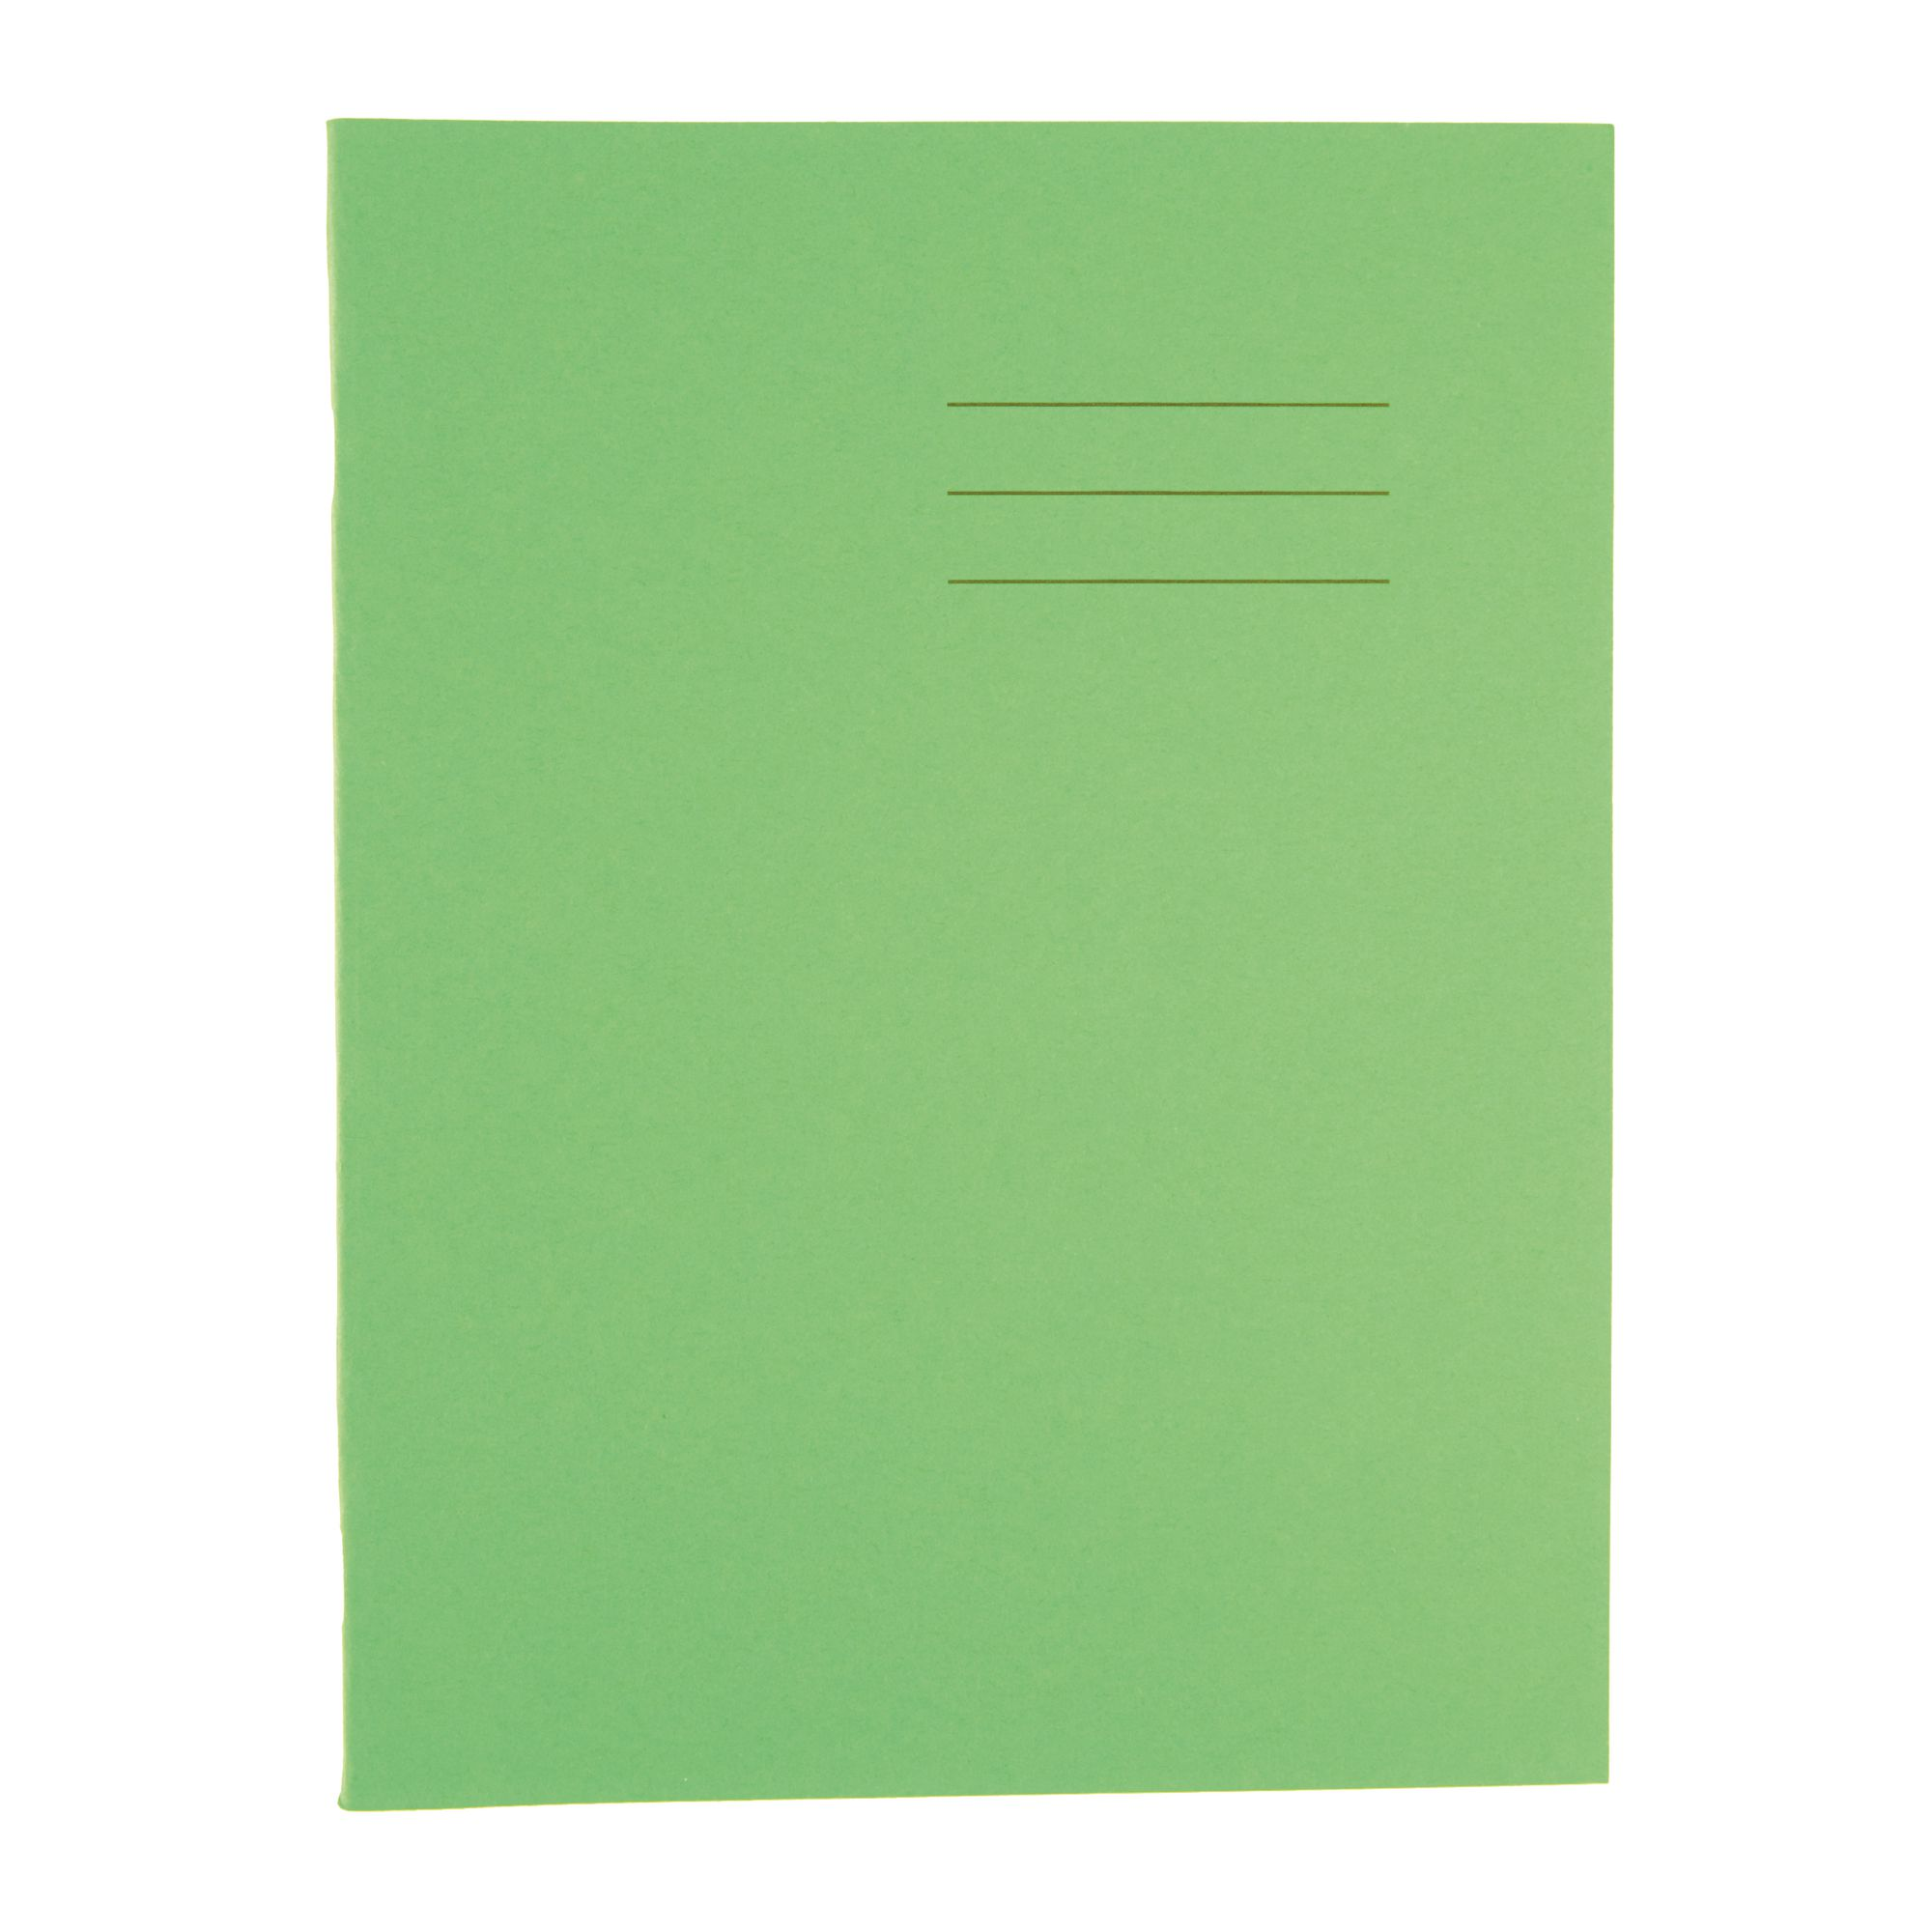 Classmates Vivid Green A4 Exercise Book 32-Page, 8mm Ruled / Plain Split -  Pack of 100